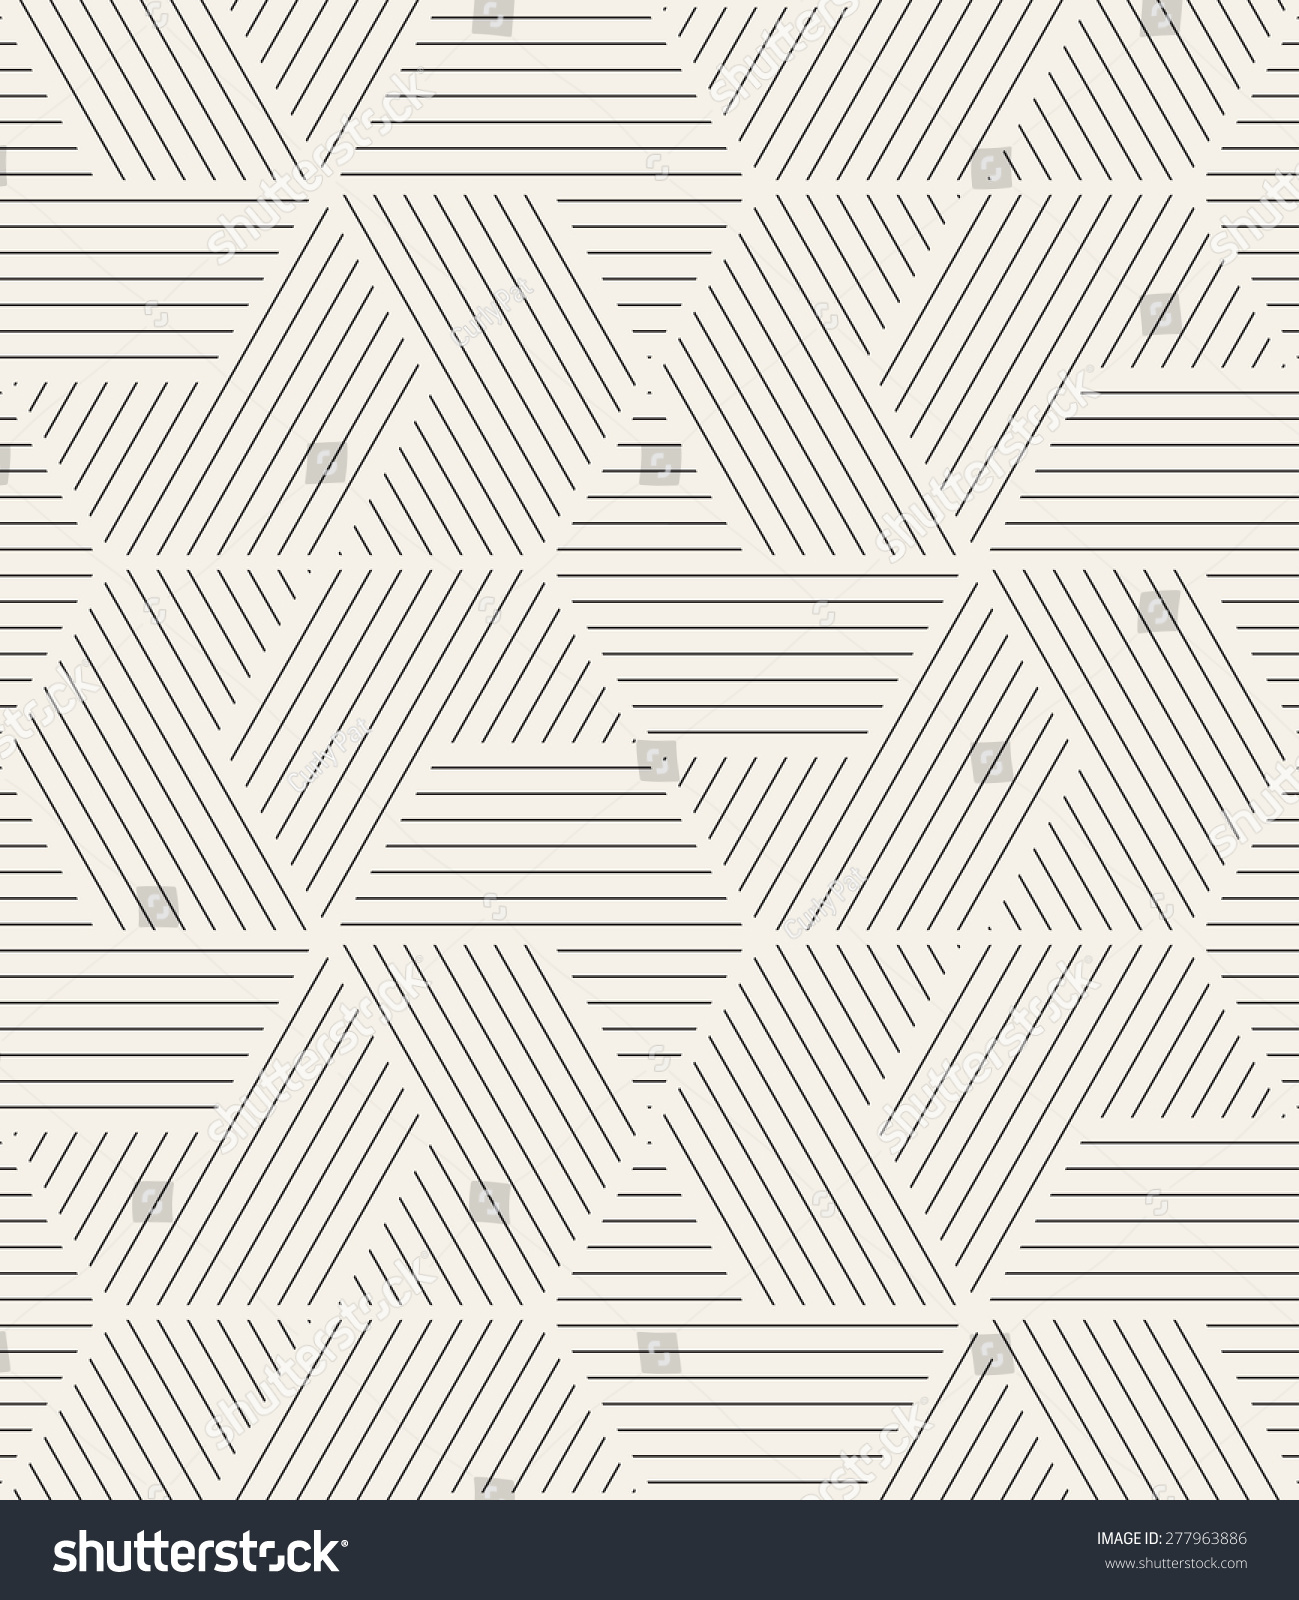 Image Triangles Graphic Design Patterns Download